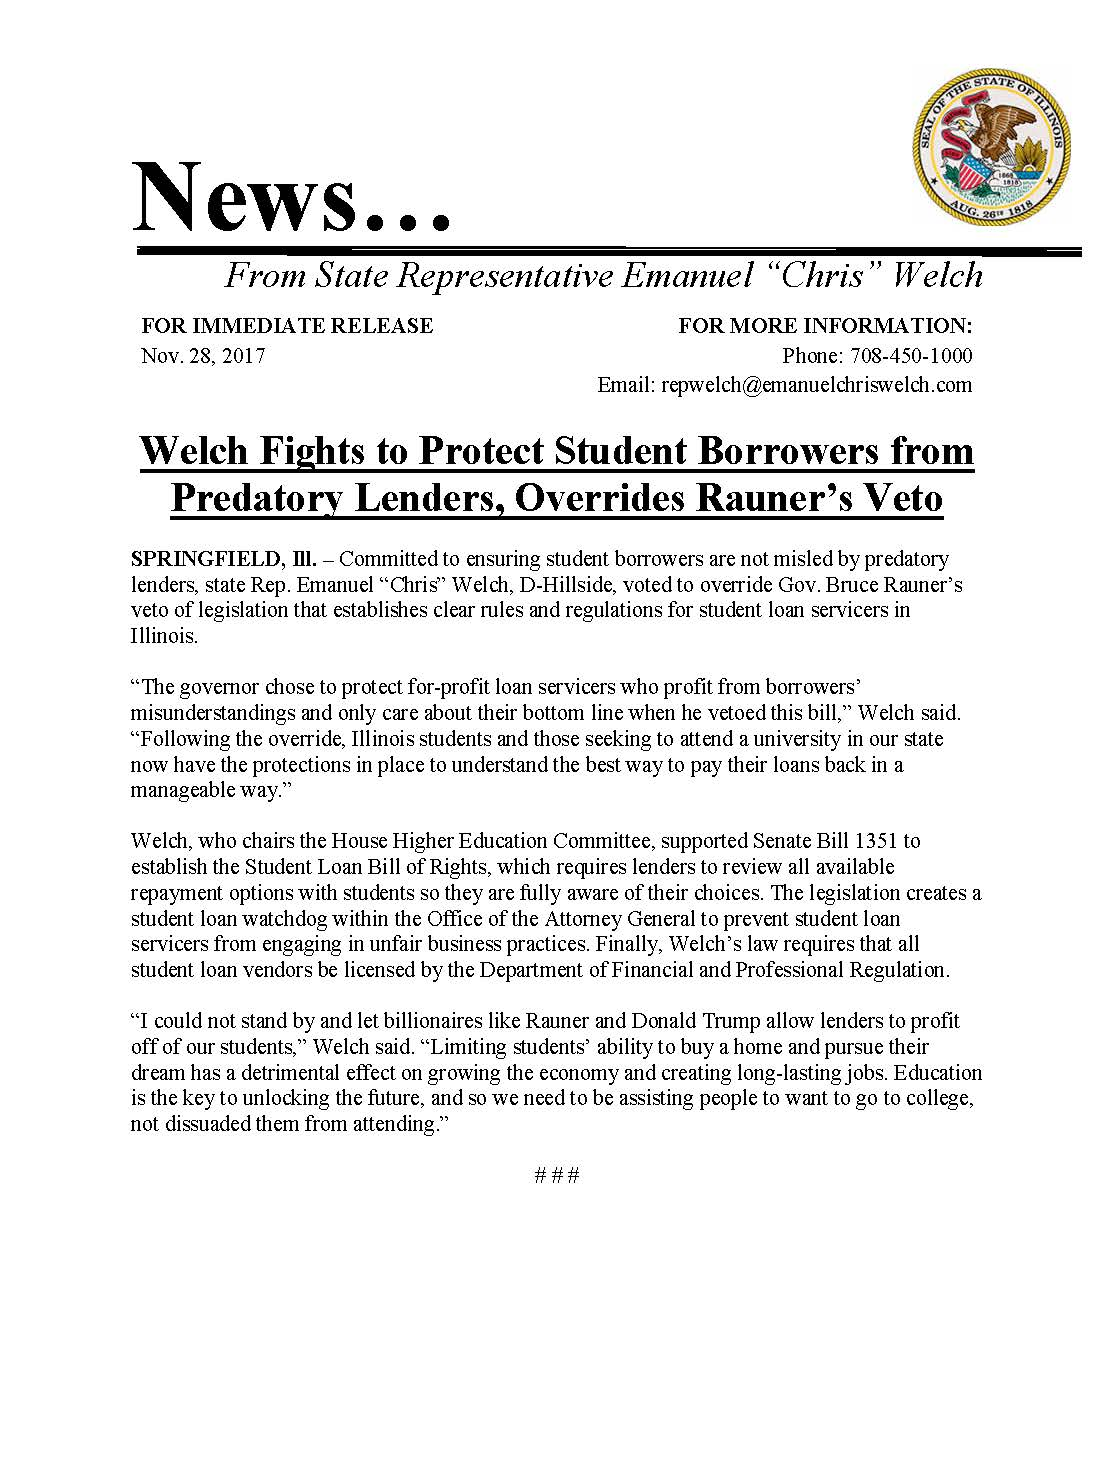 Welch Fights to Protect Student Borrowers  (November 28, 2017)